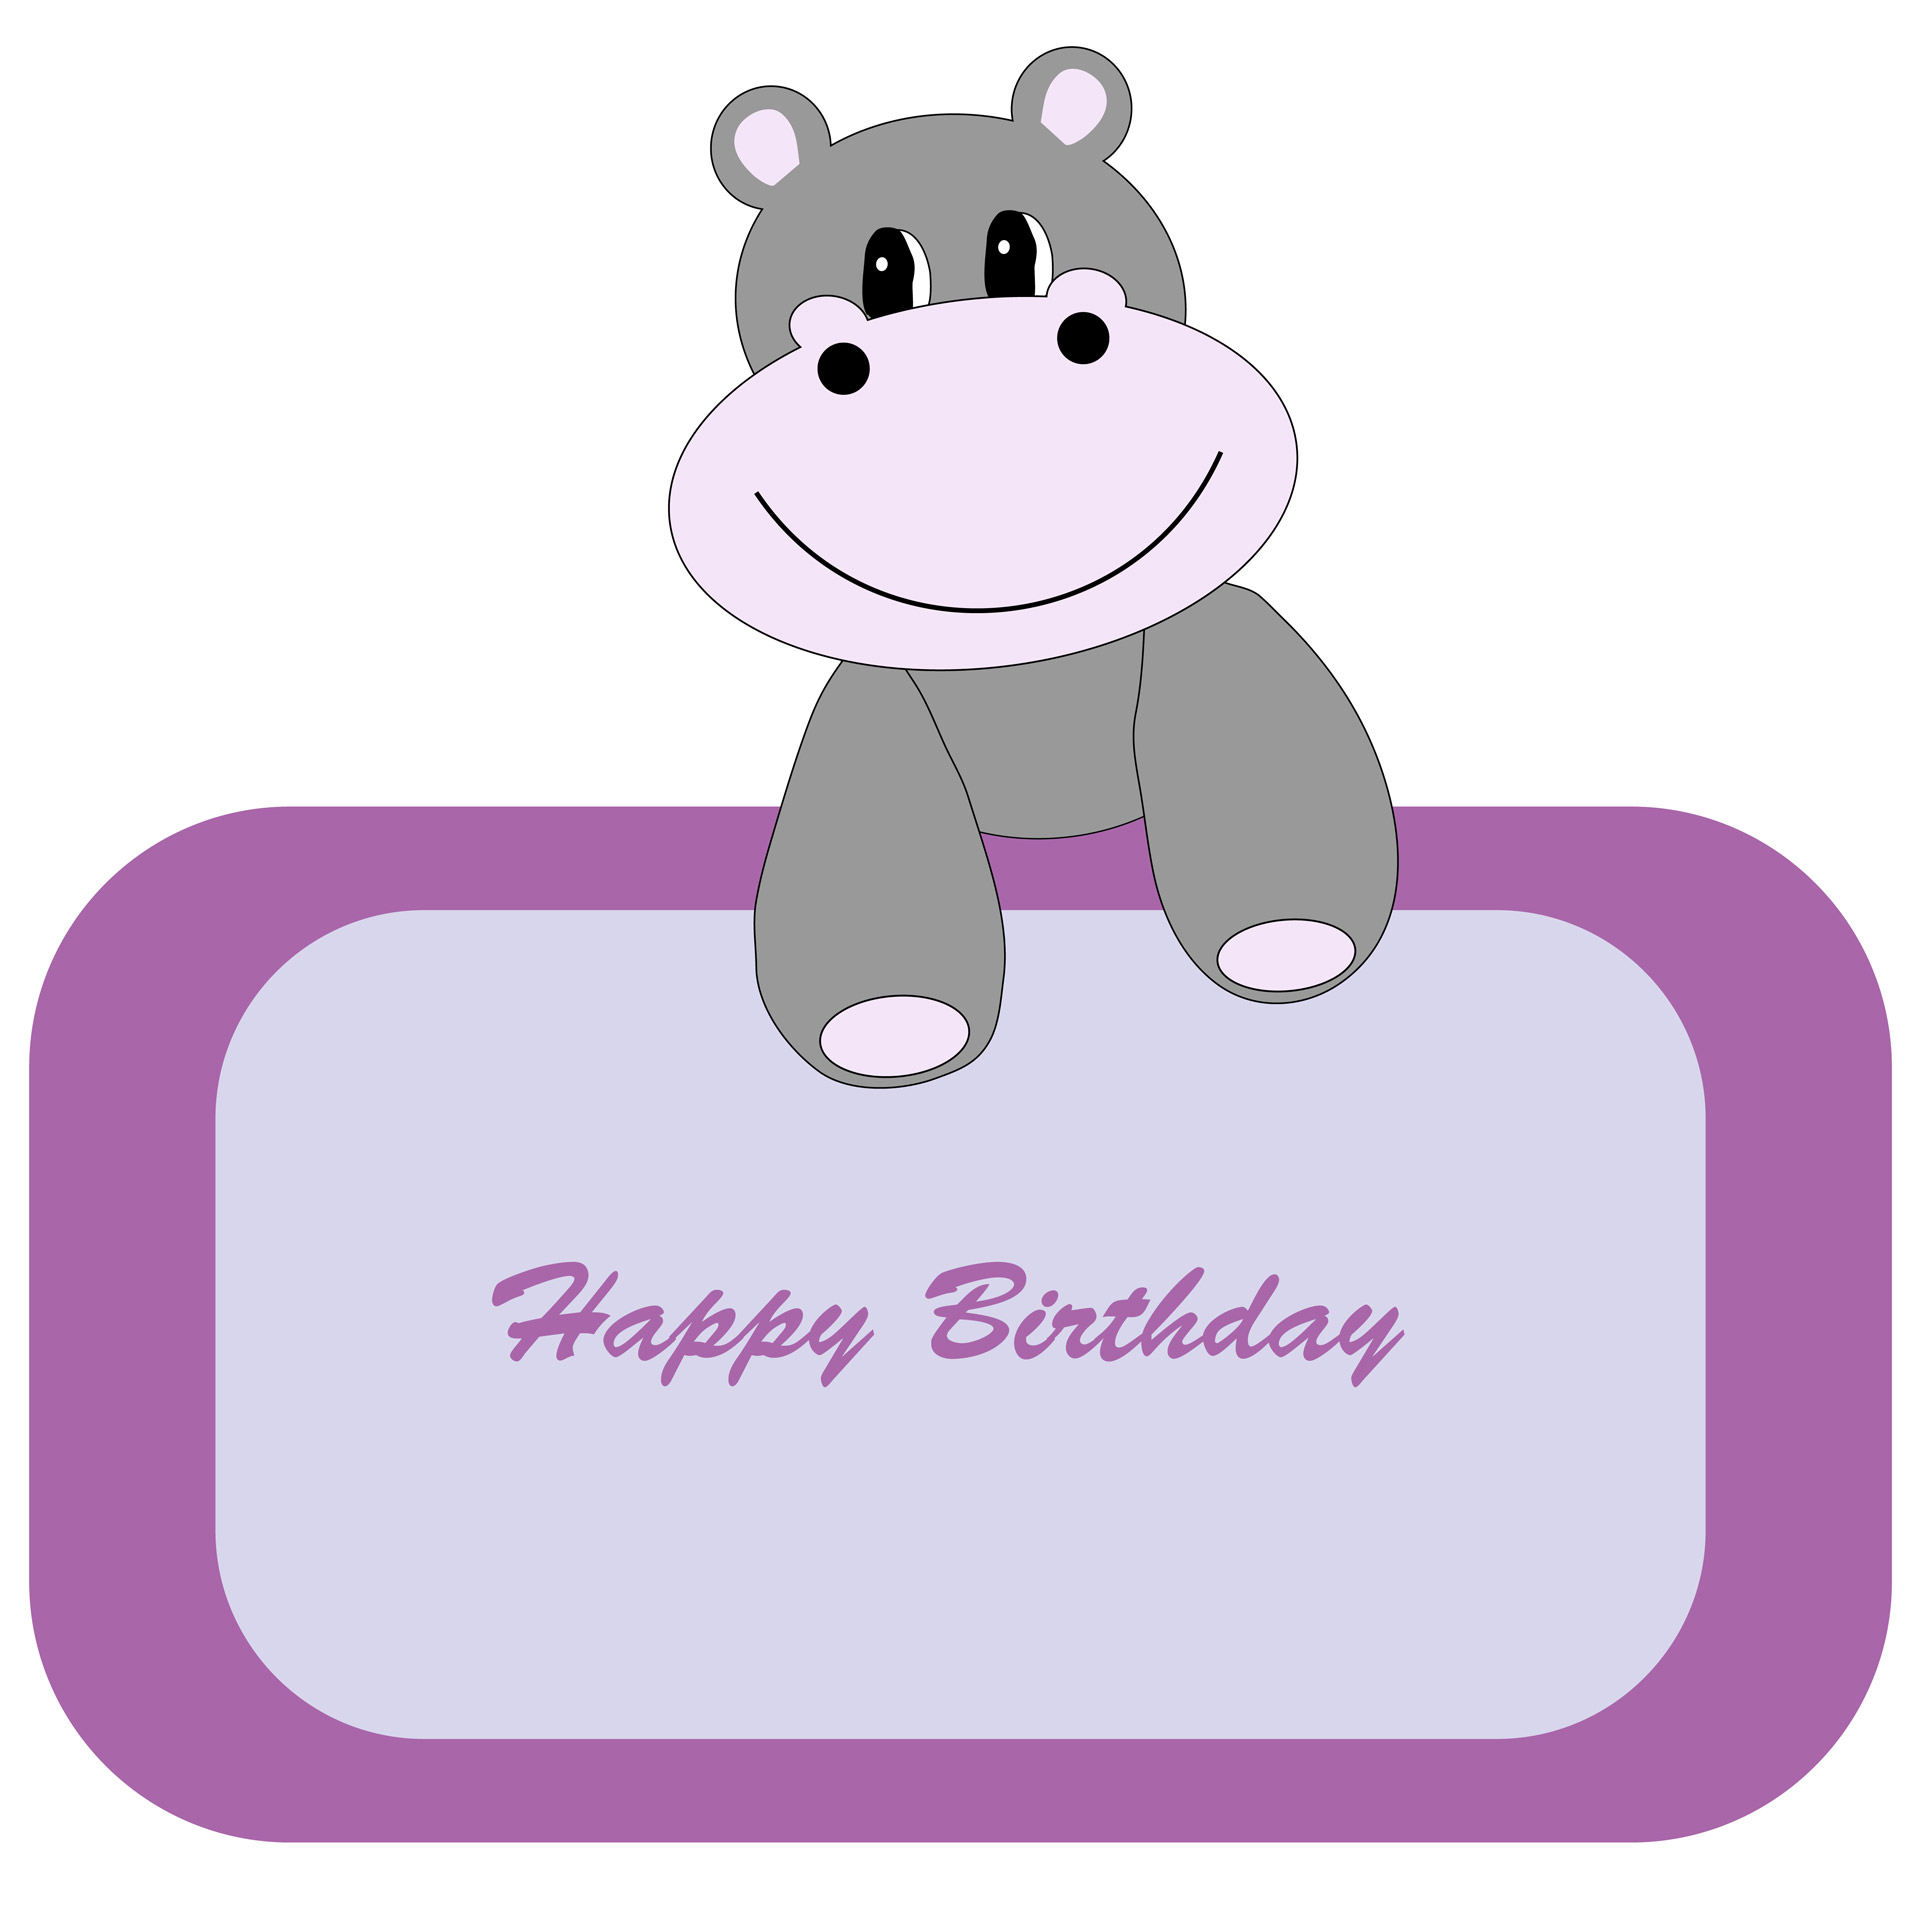 Hippopotamus clipart animated. Cute hippo birthday banner